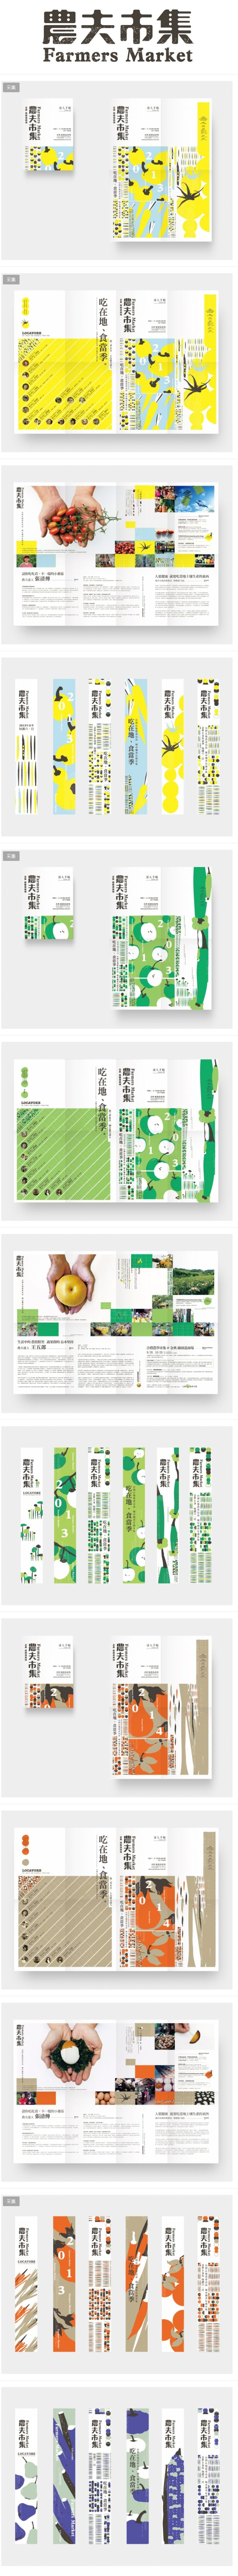 Asian Farmers Market Branding